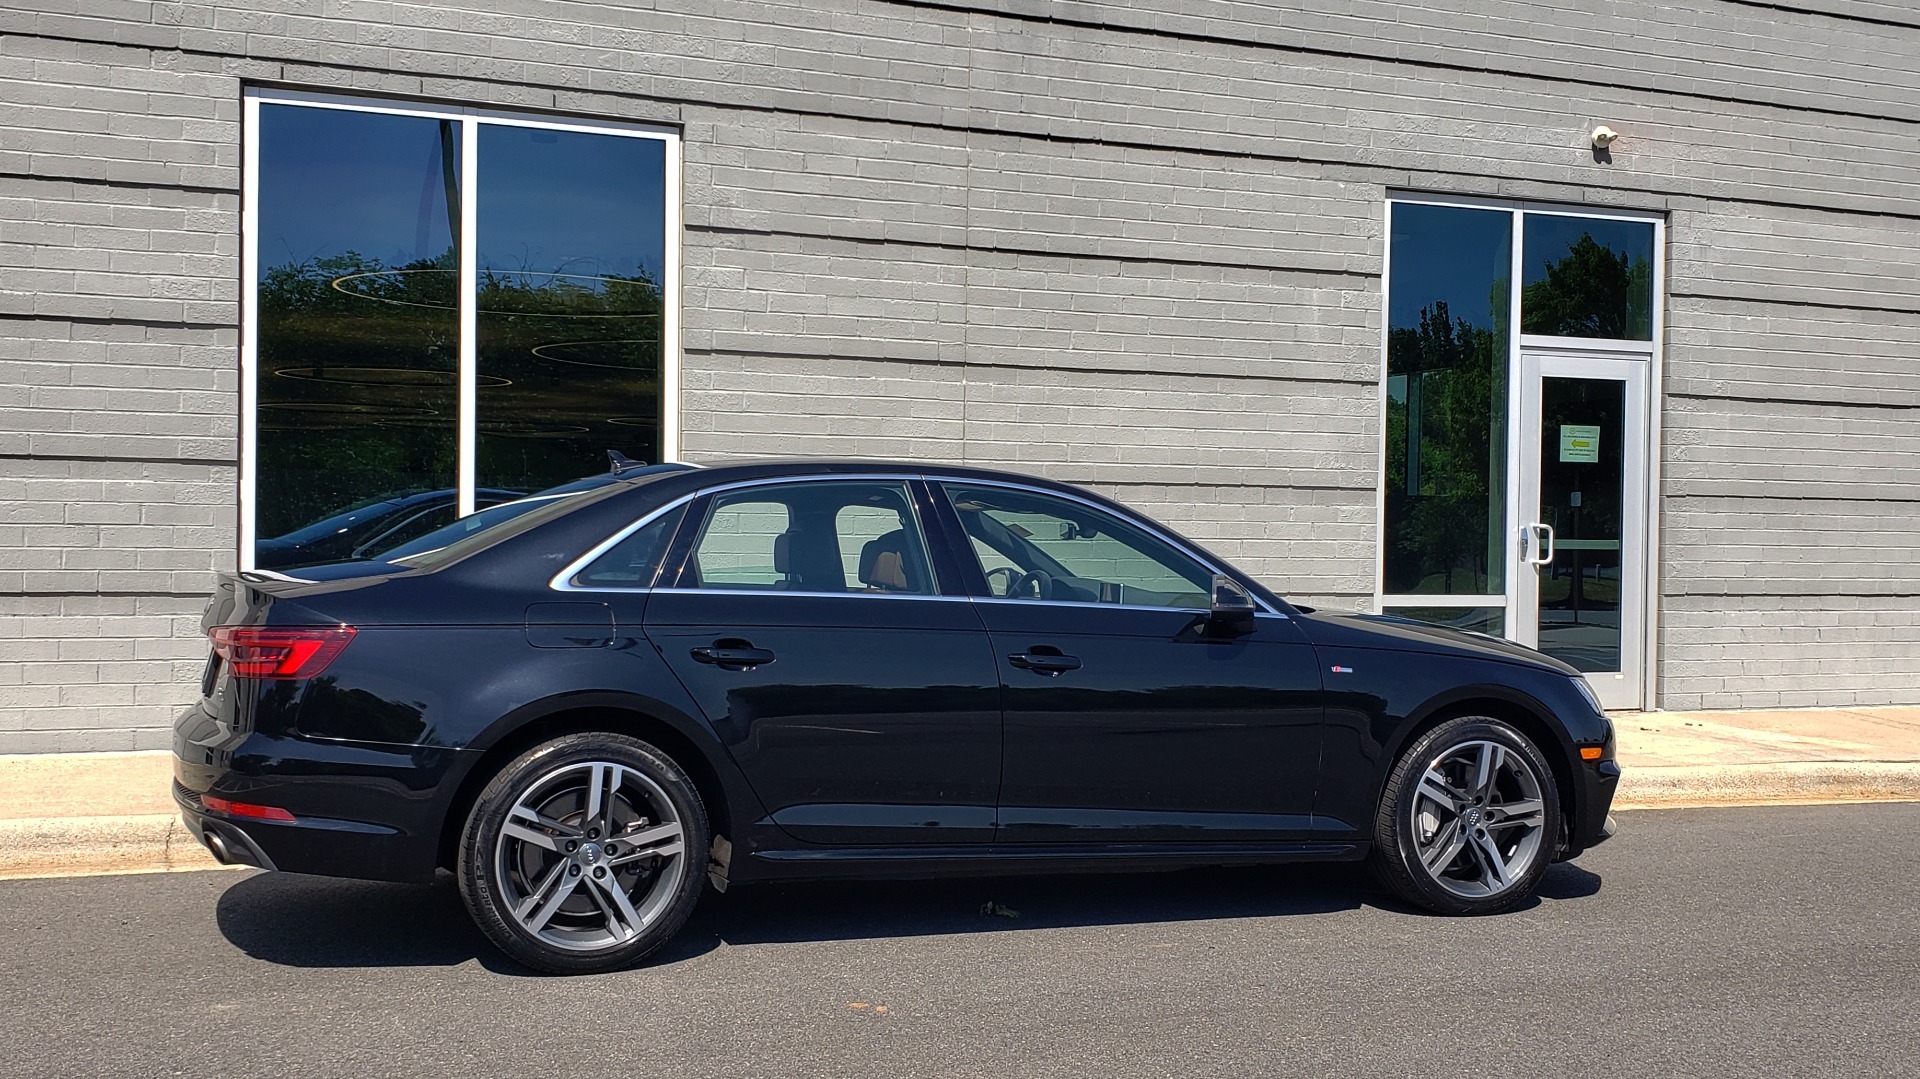 Used 2018 Audi A4 PREMIUM PLUS 2.0T / NAV / SUNROOF / B&O SND / CLD WTHR / REARVIEW for sale $30,695 at Formula Imports in Charlotte NC 28227 7